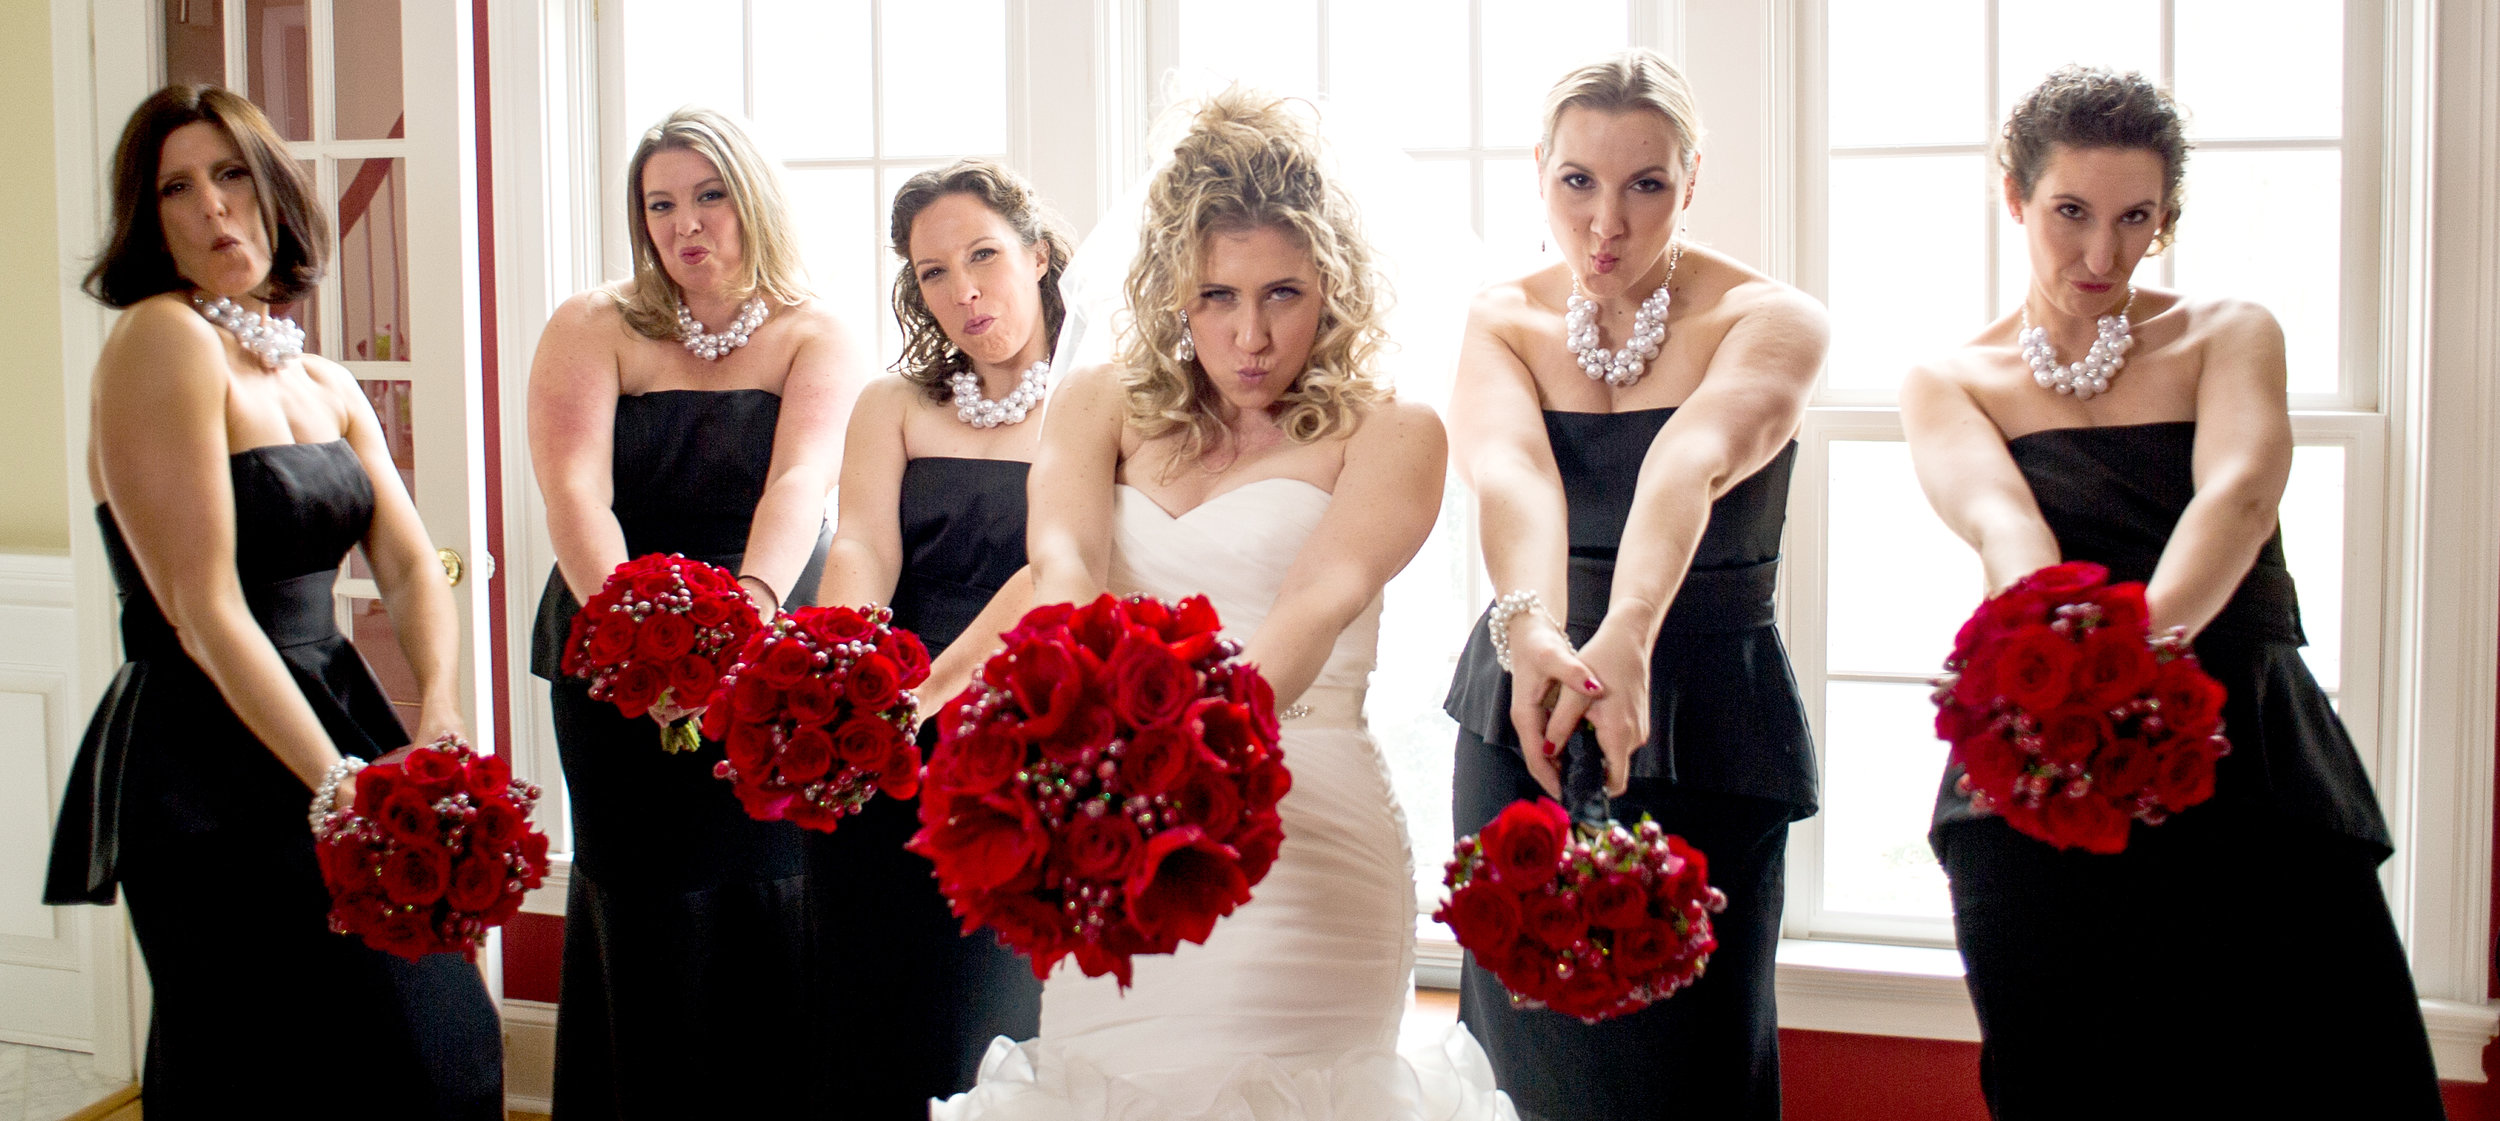 Bride in white and bridesmaids in black dresses hold their bold red rose bouquets